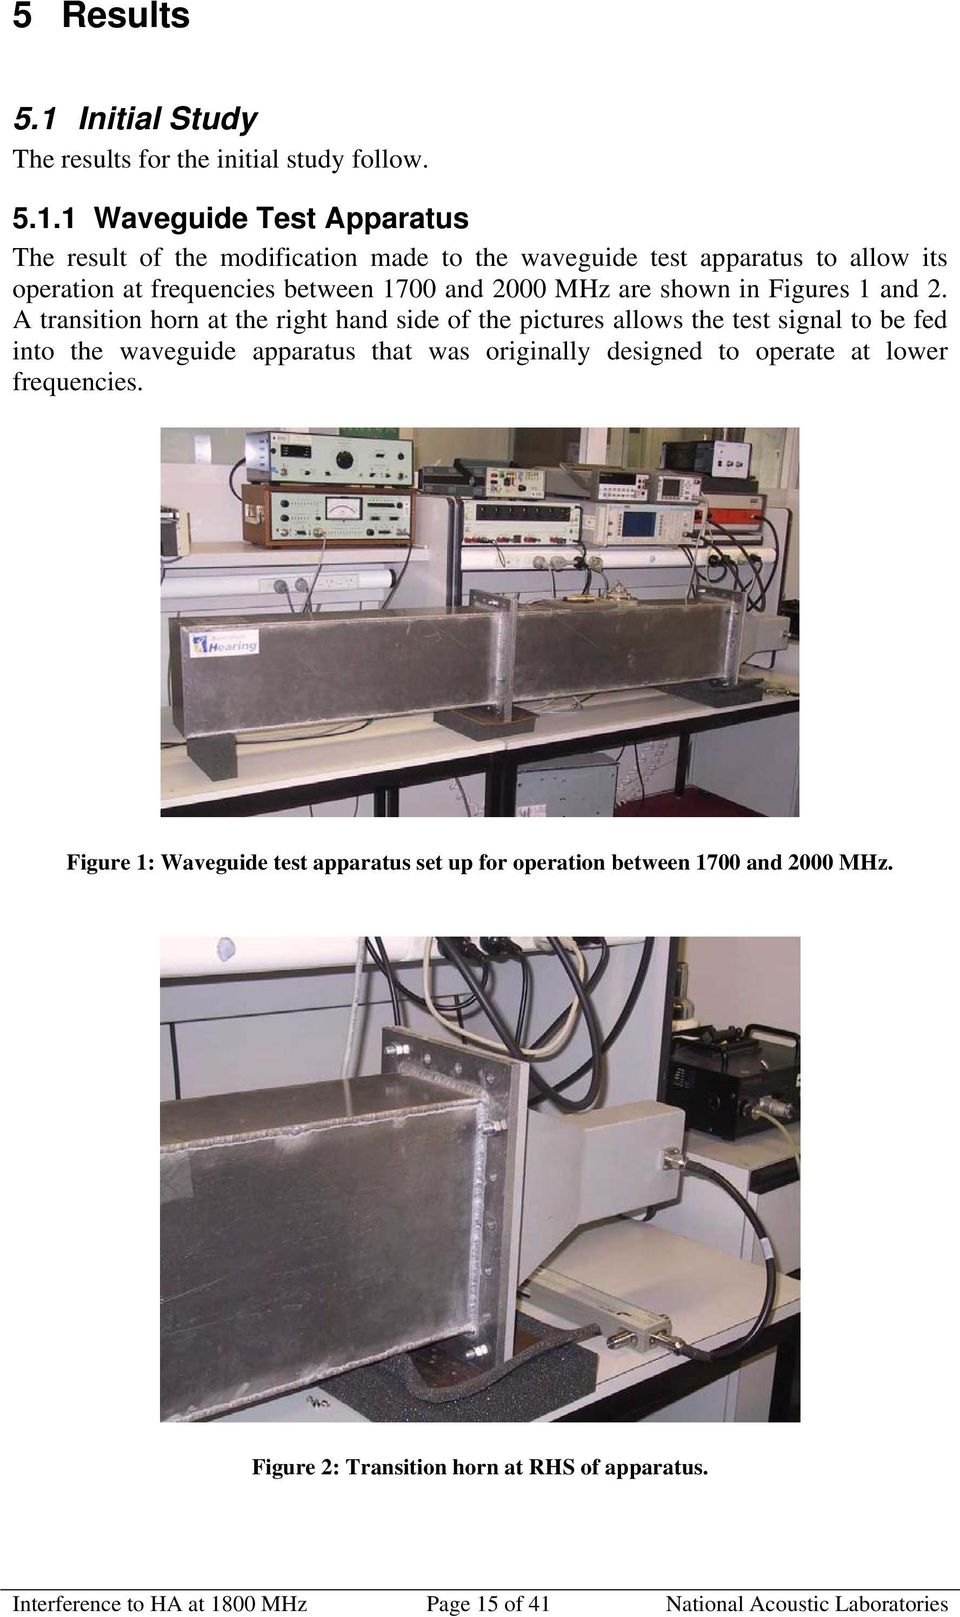 1 Waveguide Test Apparatus The result of the modification made to the waveguide test apparatus to allow its operation at frequencies between 1700 and 2000 MHz are